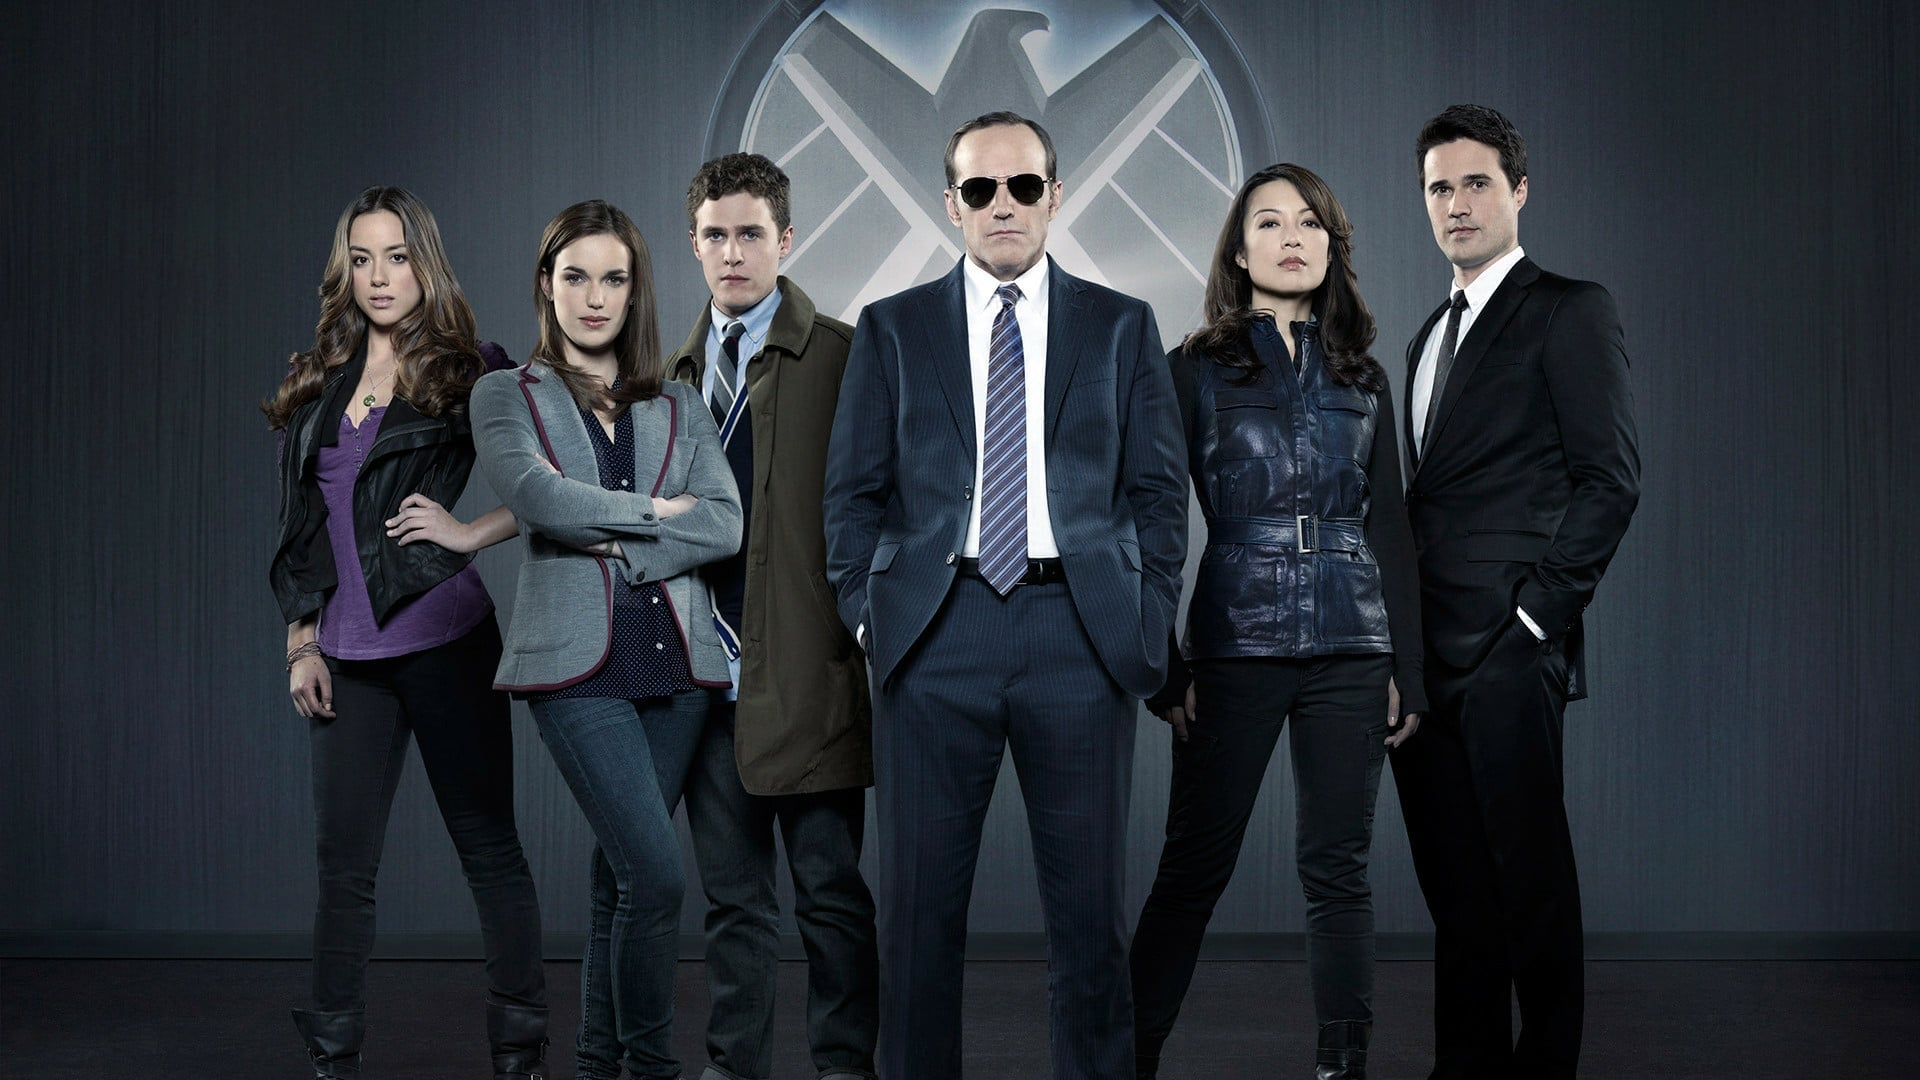 Marvel's Agents of S.H.I.E.L.D. - Season 1